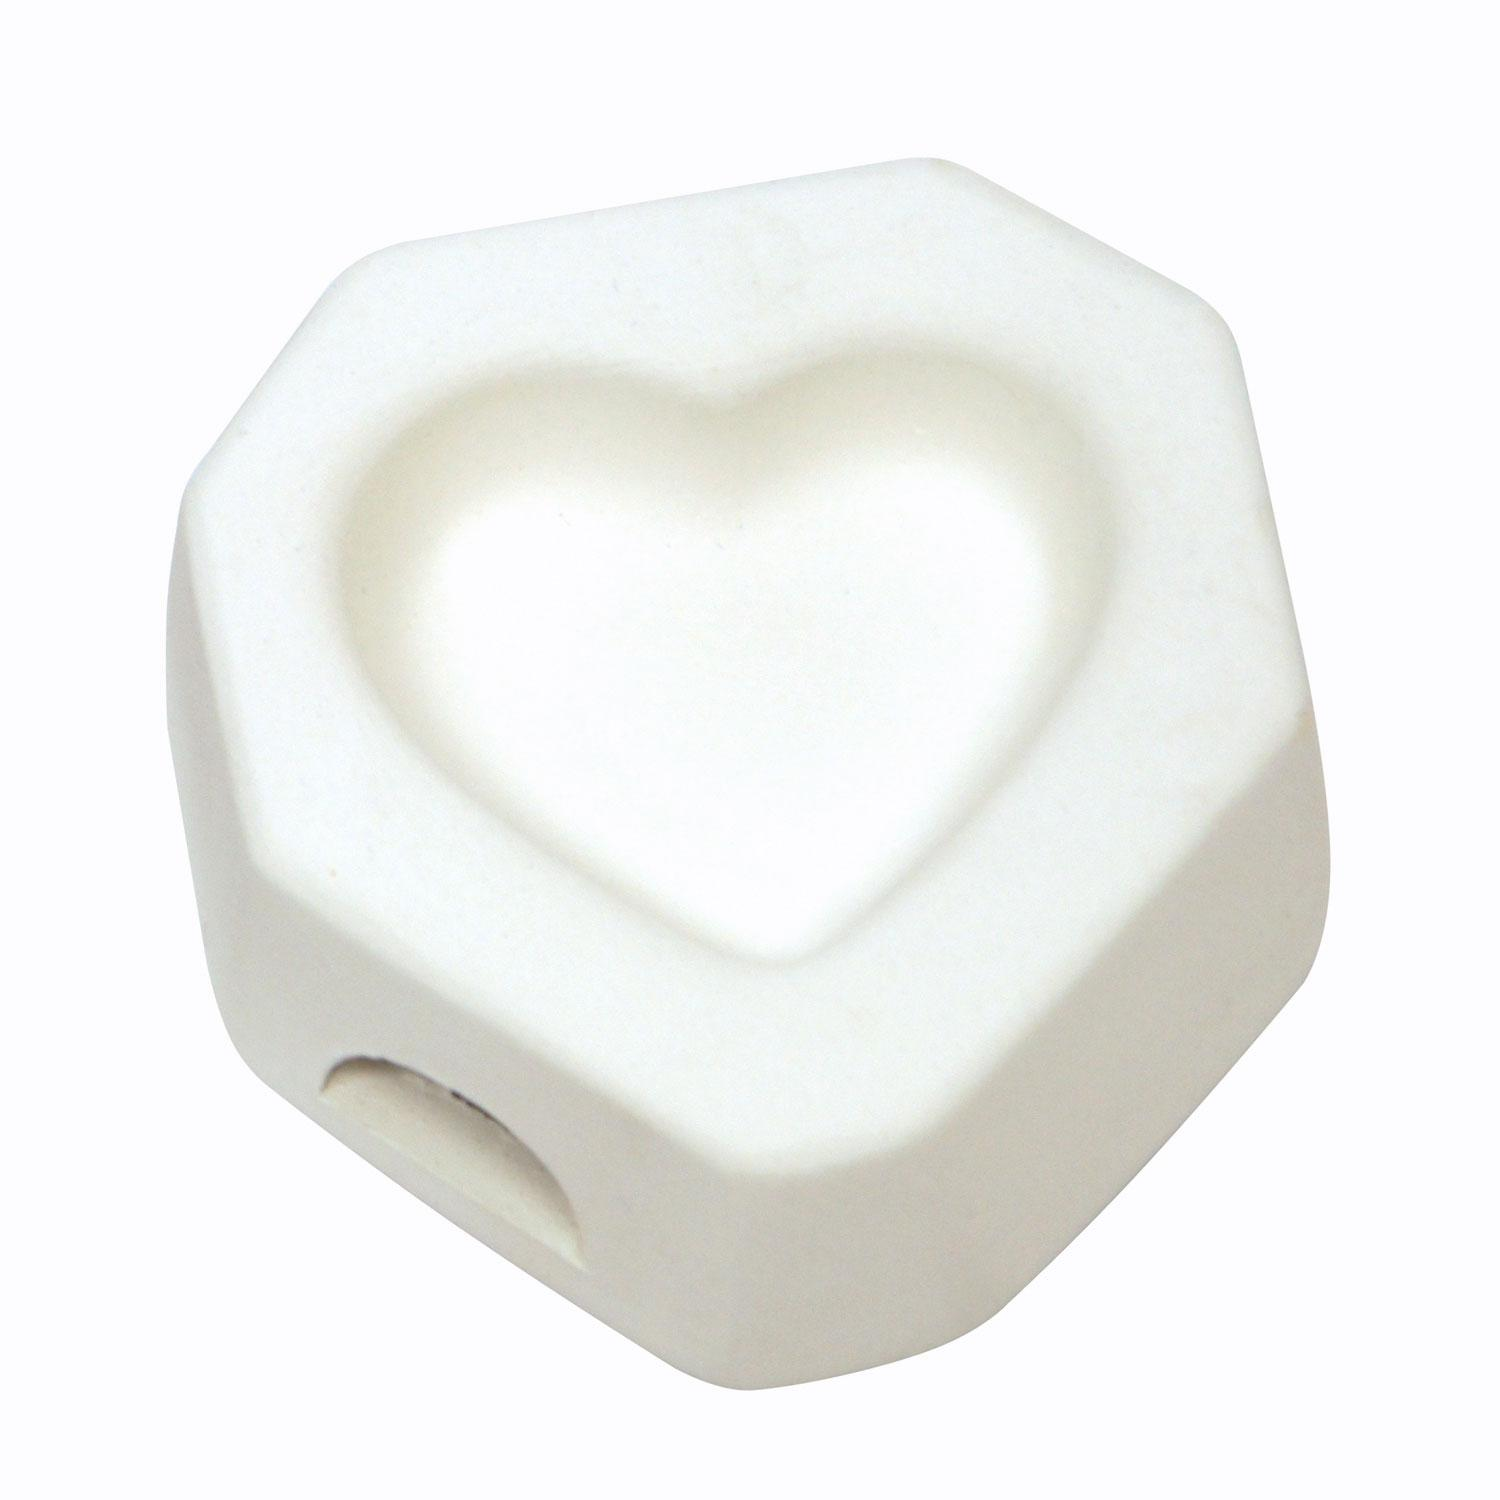 1-1/2 Heart Casting Mold